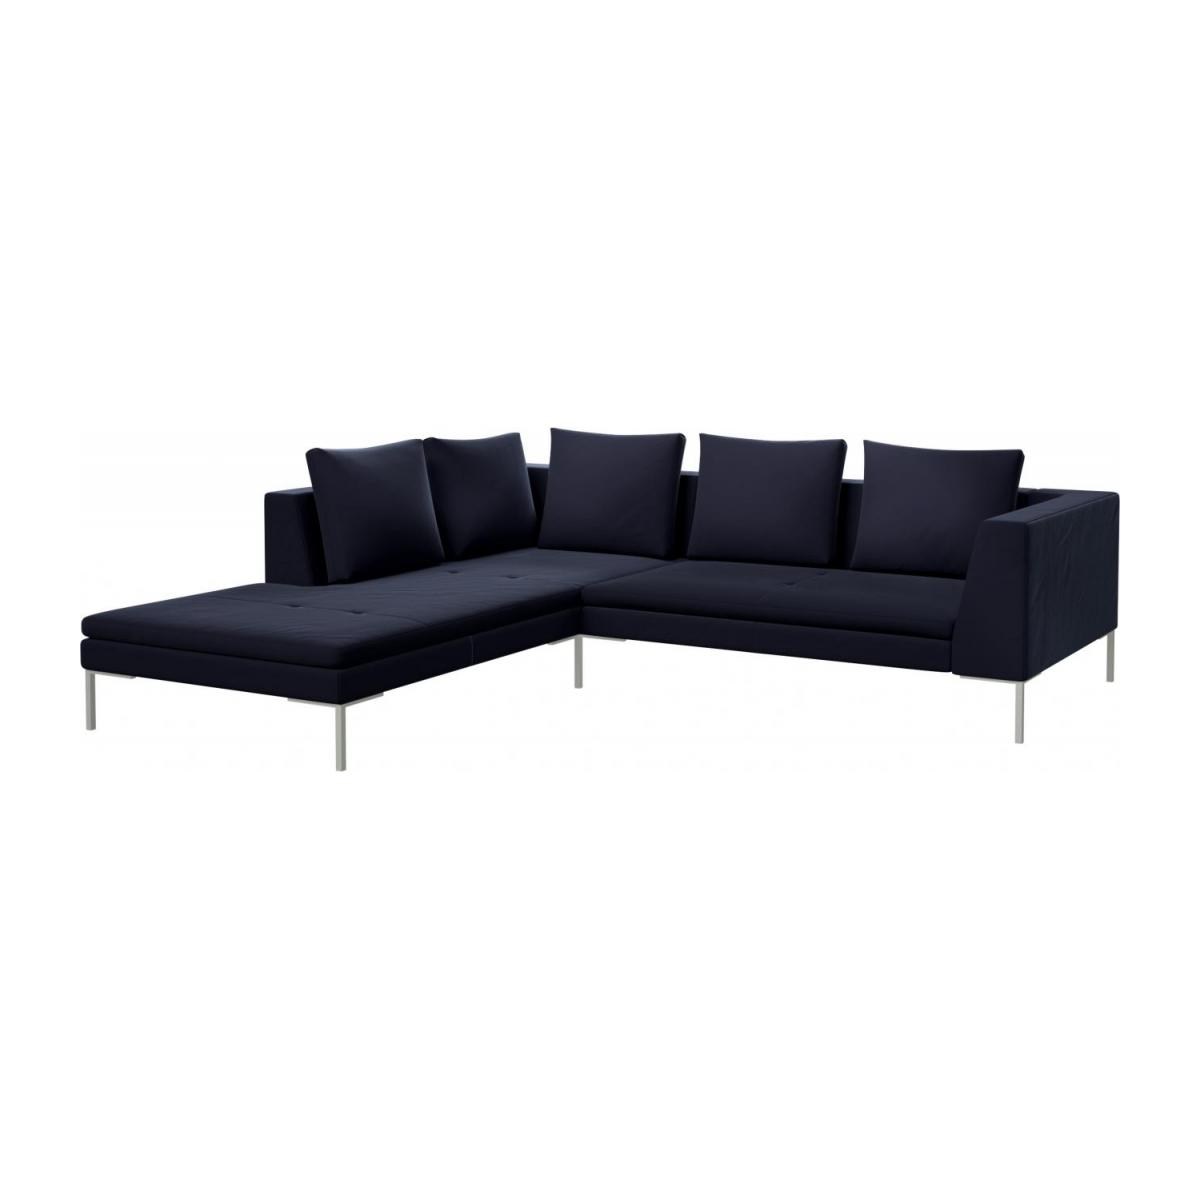 2 seater sofa with chaise longue on the left in Super Velvet fabric, dark blue  n°1